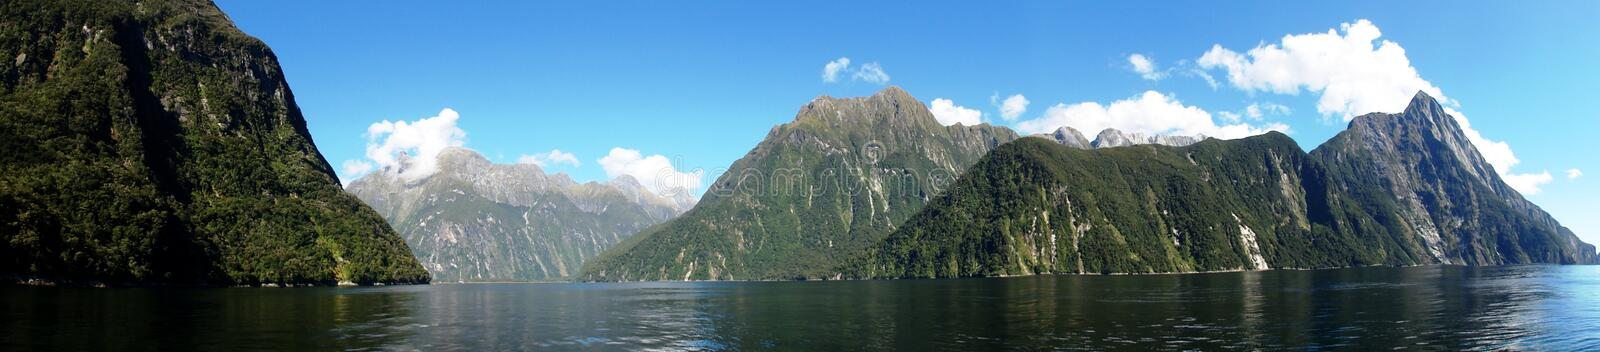 Mountains and water. Mountains meet the sea in the Fiord of Milford Sound, New Zealand stock image